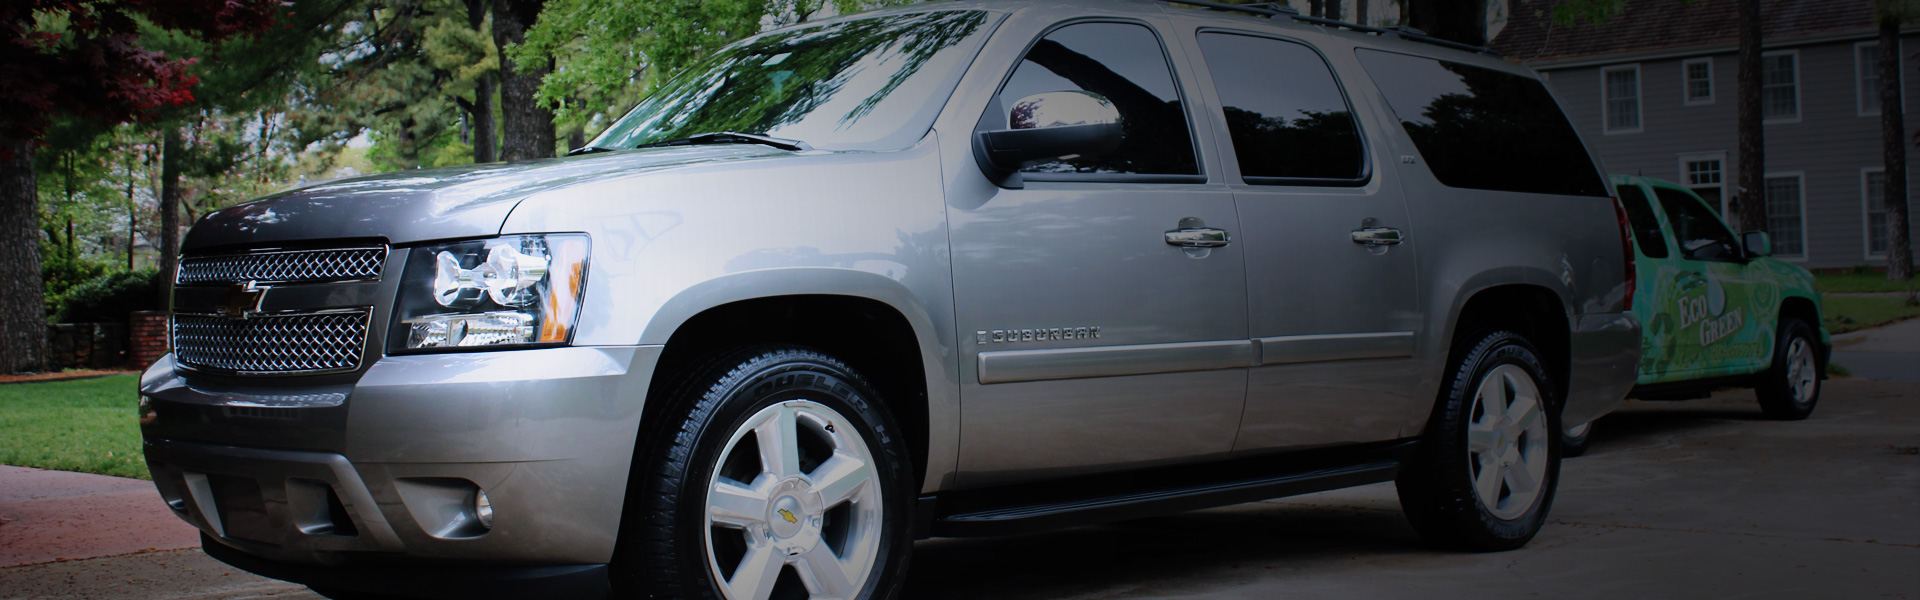 Picture of a Chevy Suburban in EcoGreen's rotating banner